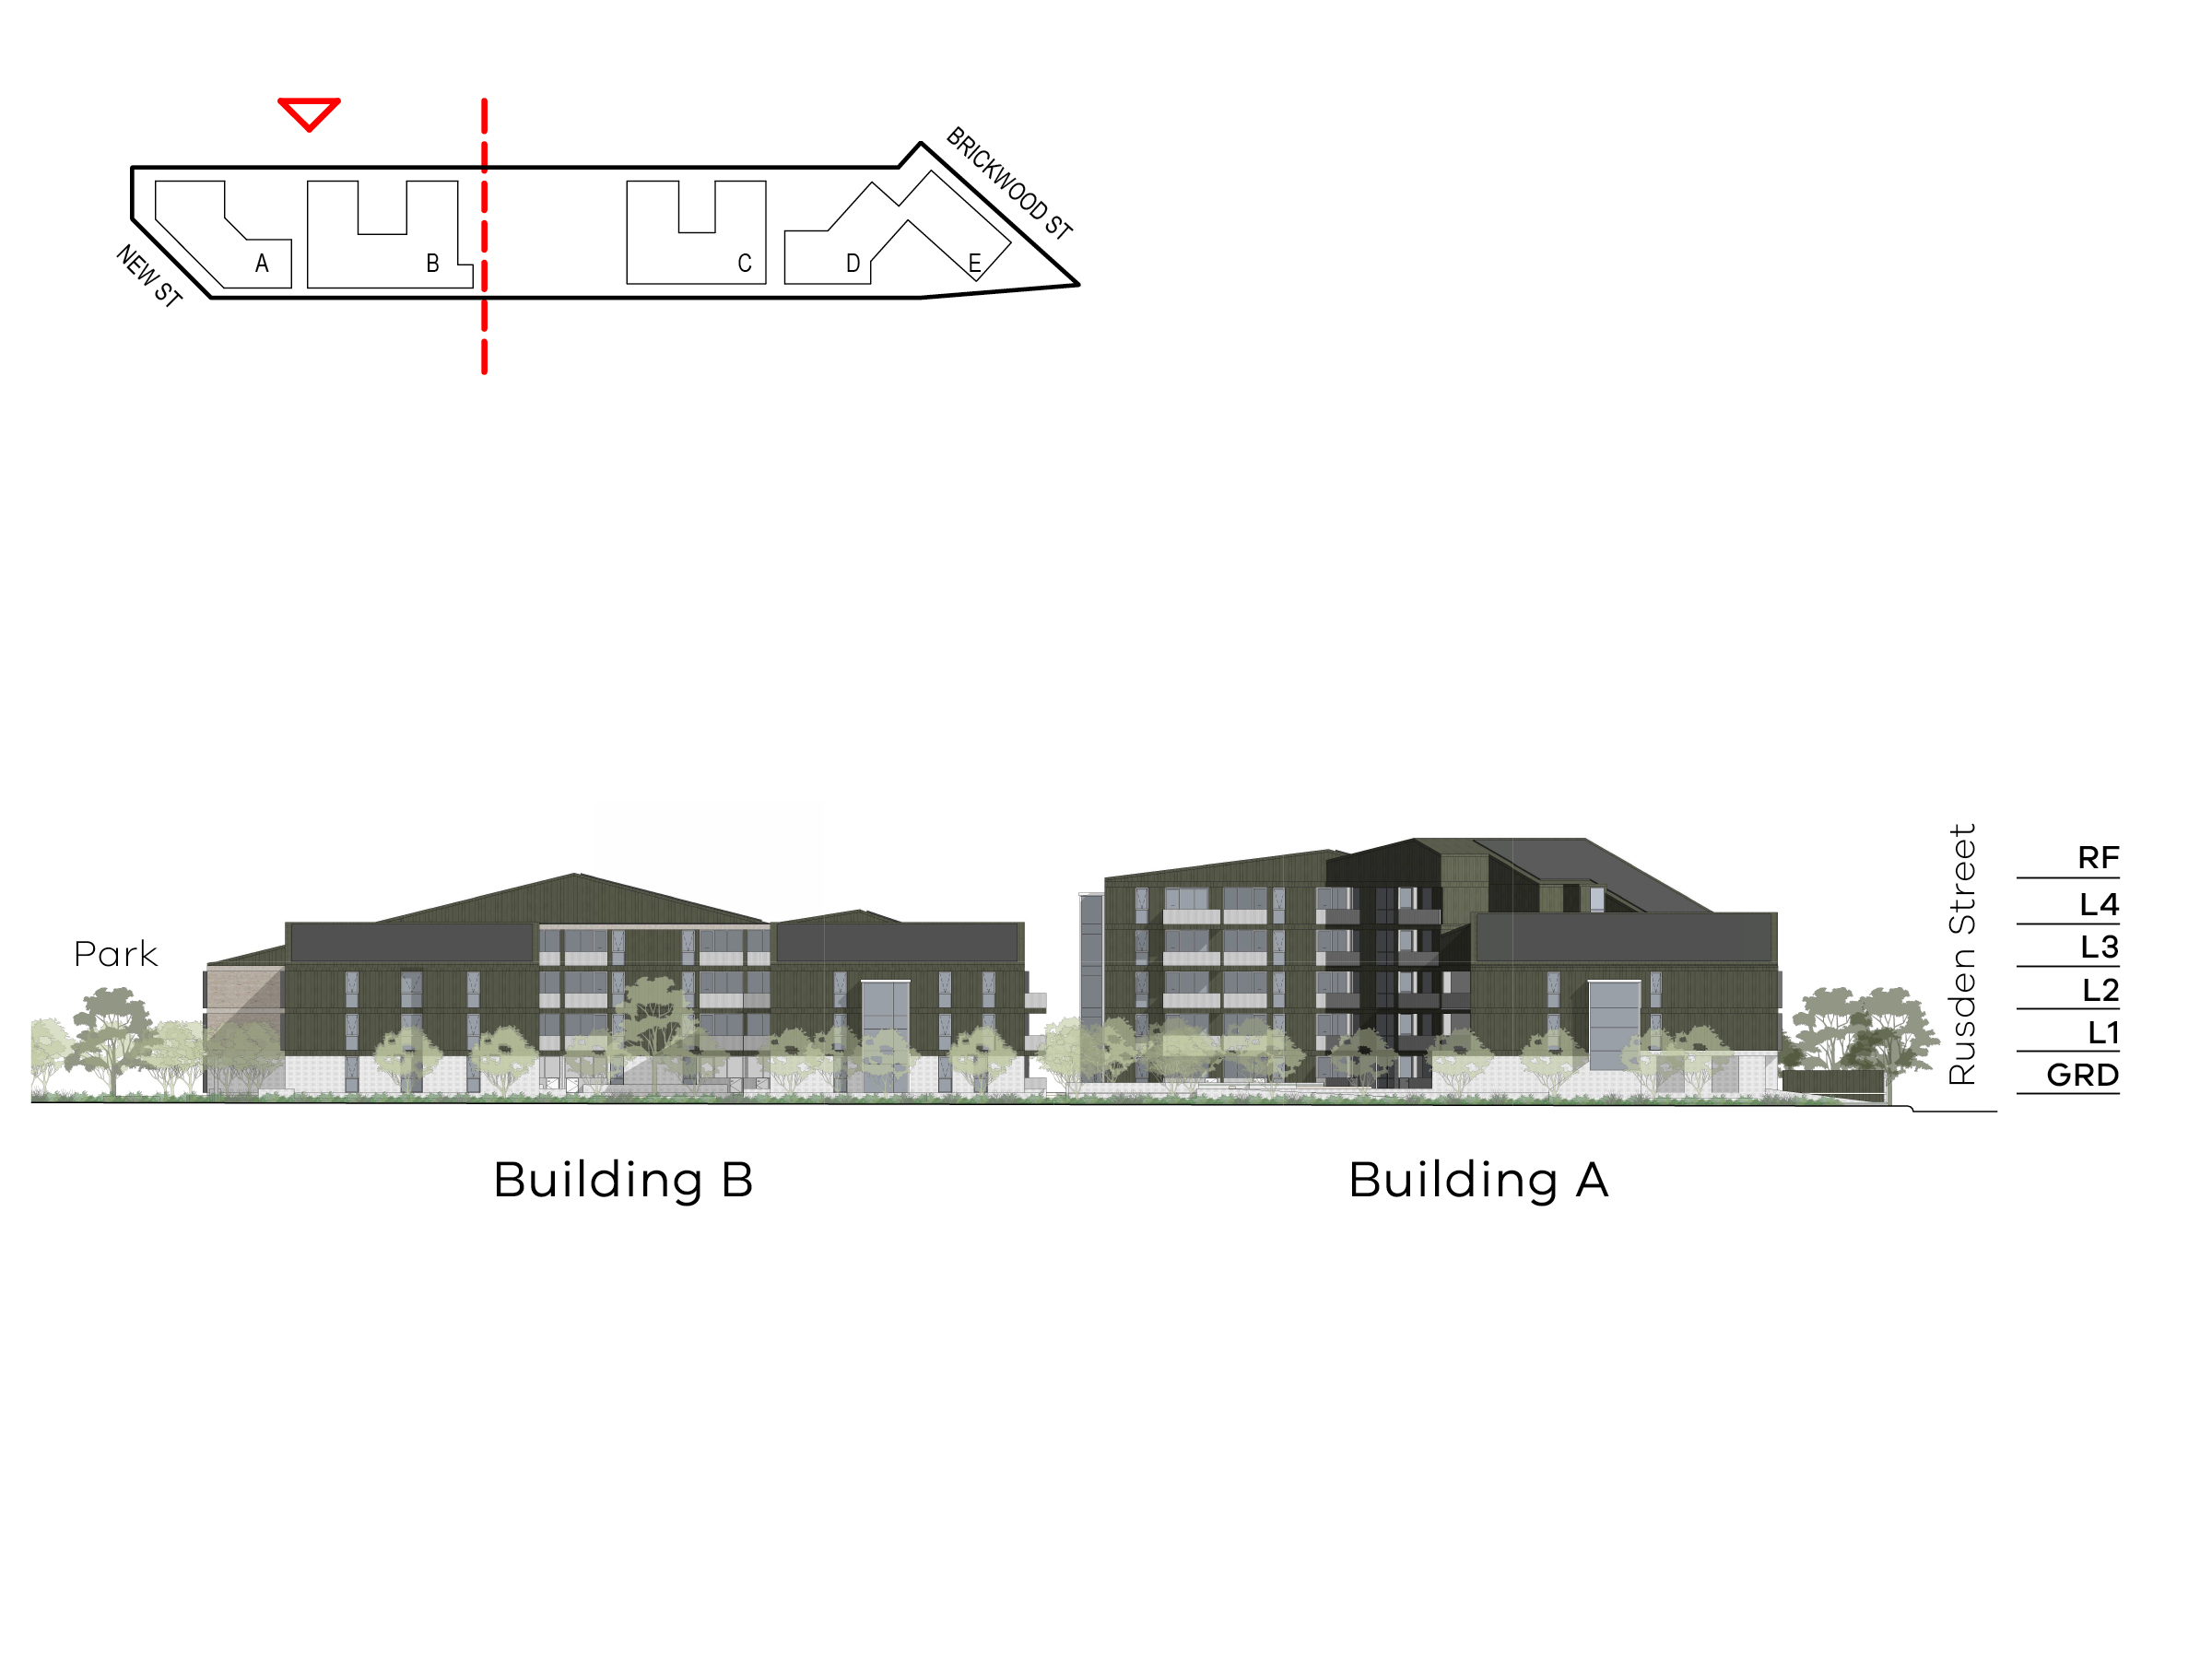 Diagram showing the heights of buildings A and B as seen from Ebden Street. Building A includes ground level, level 1 - 4 and a roof, building B includes ground level, level 1-3 and a roof.